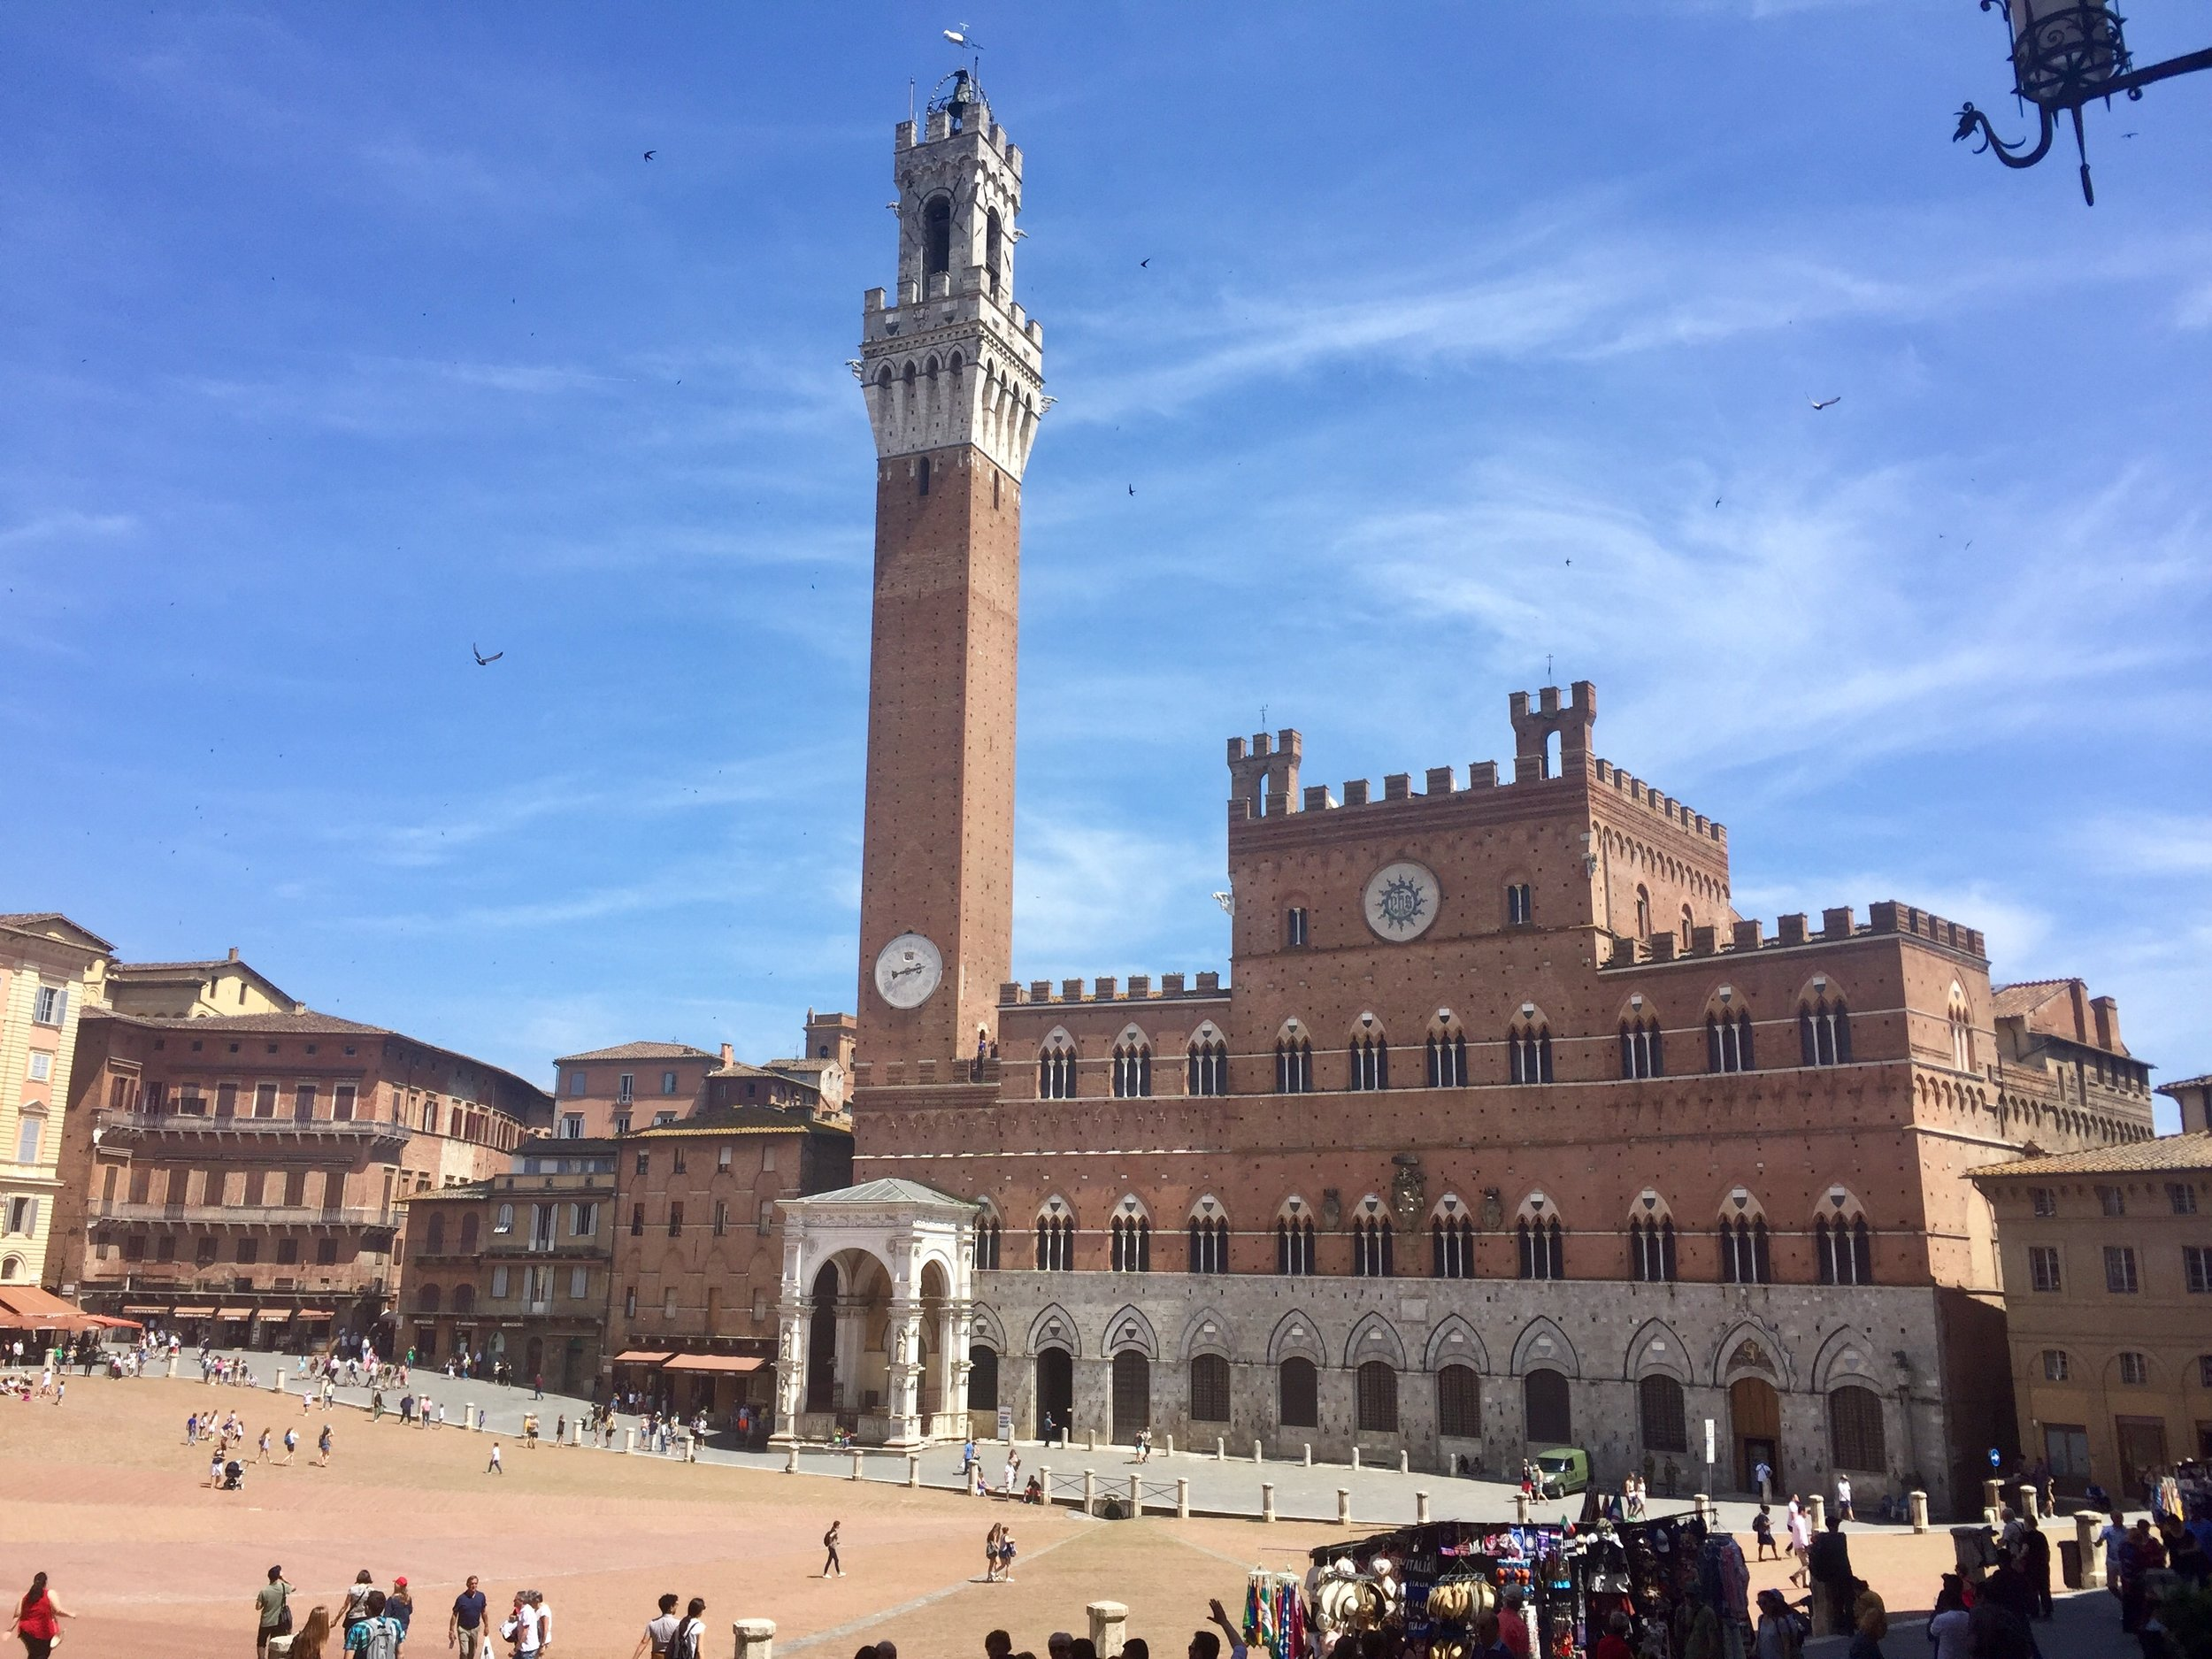 The Piazza del Campo in Siena, sight of the famous Palio horse race